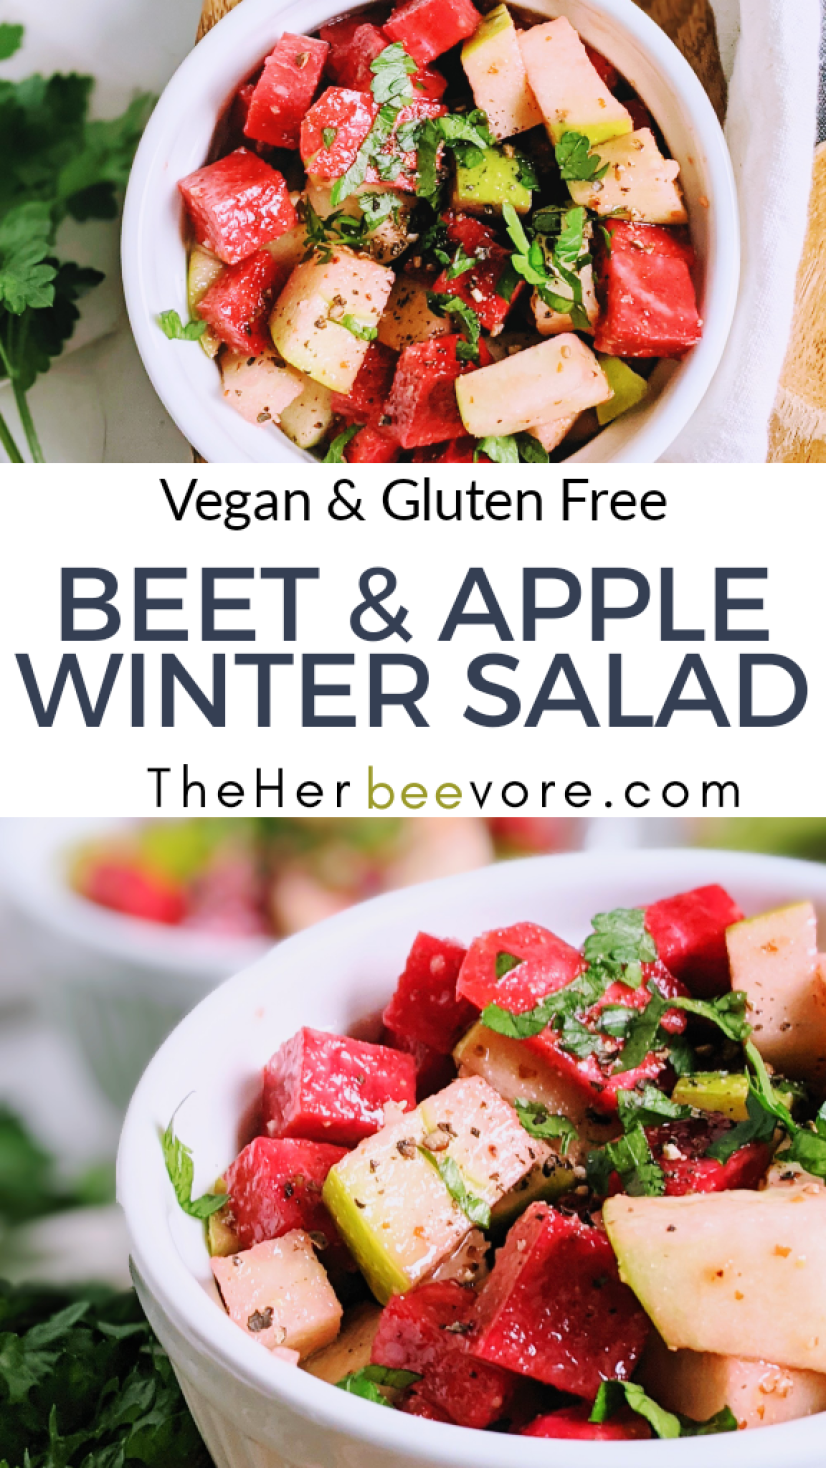 beet and apple winter salad recipe with apple cider vinegar dressing healthy vegetarian veganuary winter salads recipes for raw vegan filling healthy beet apple